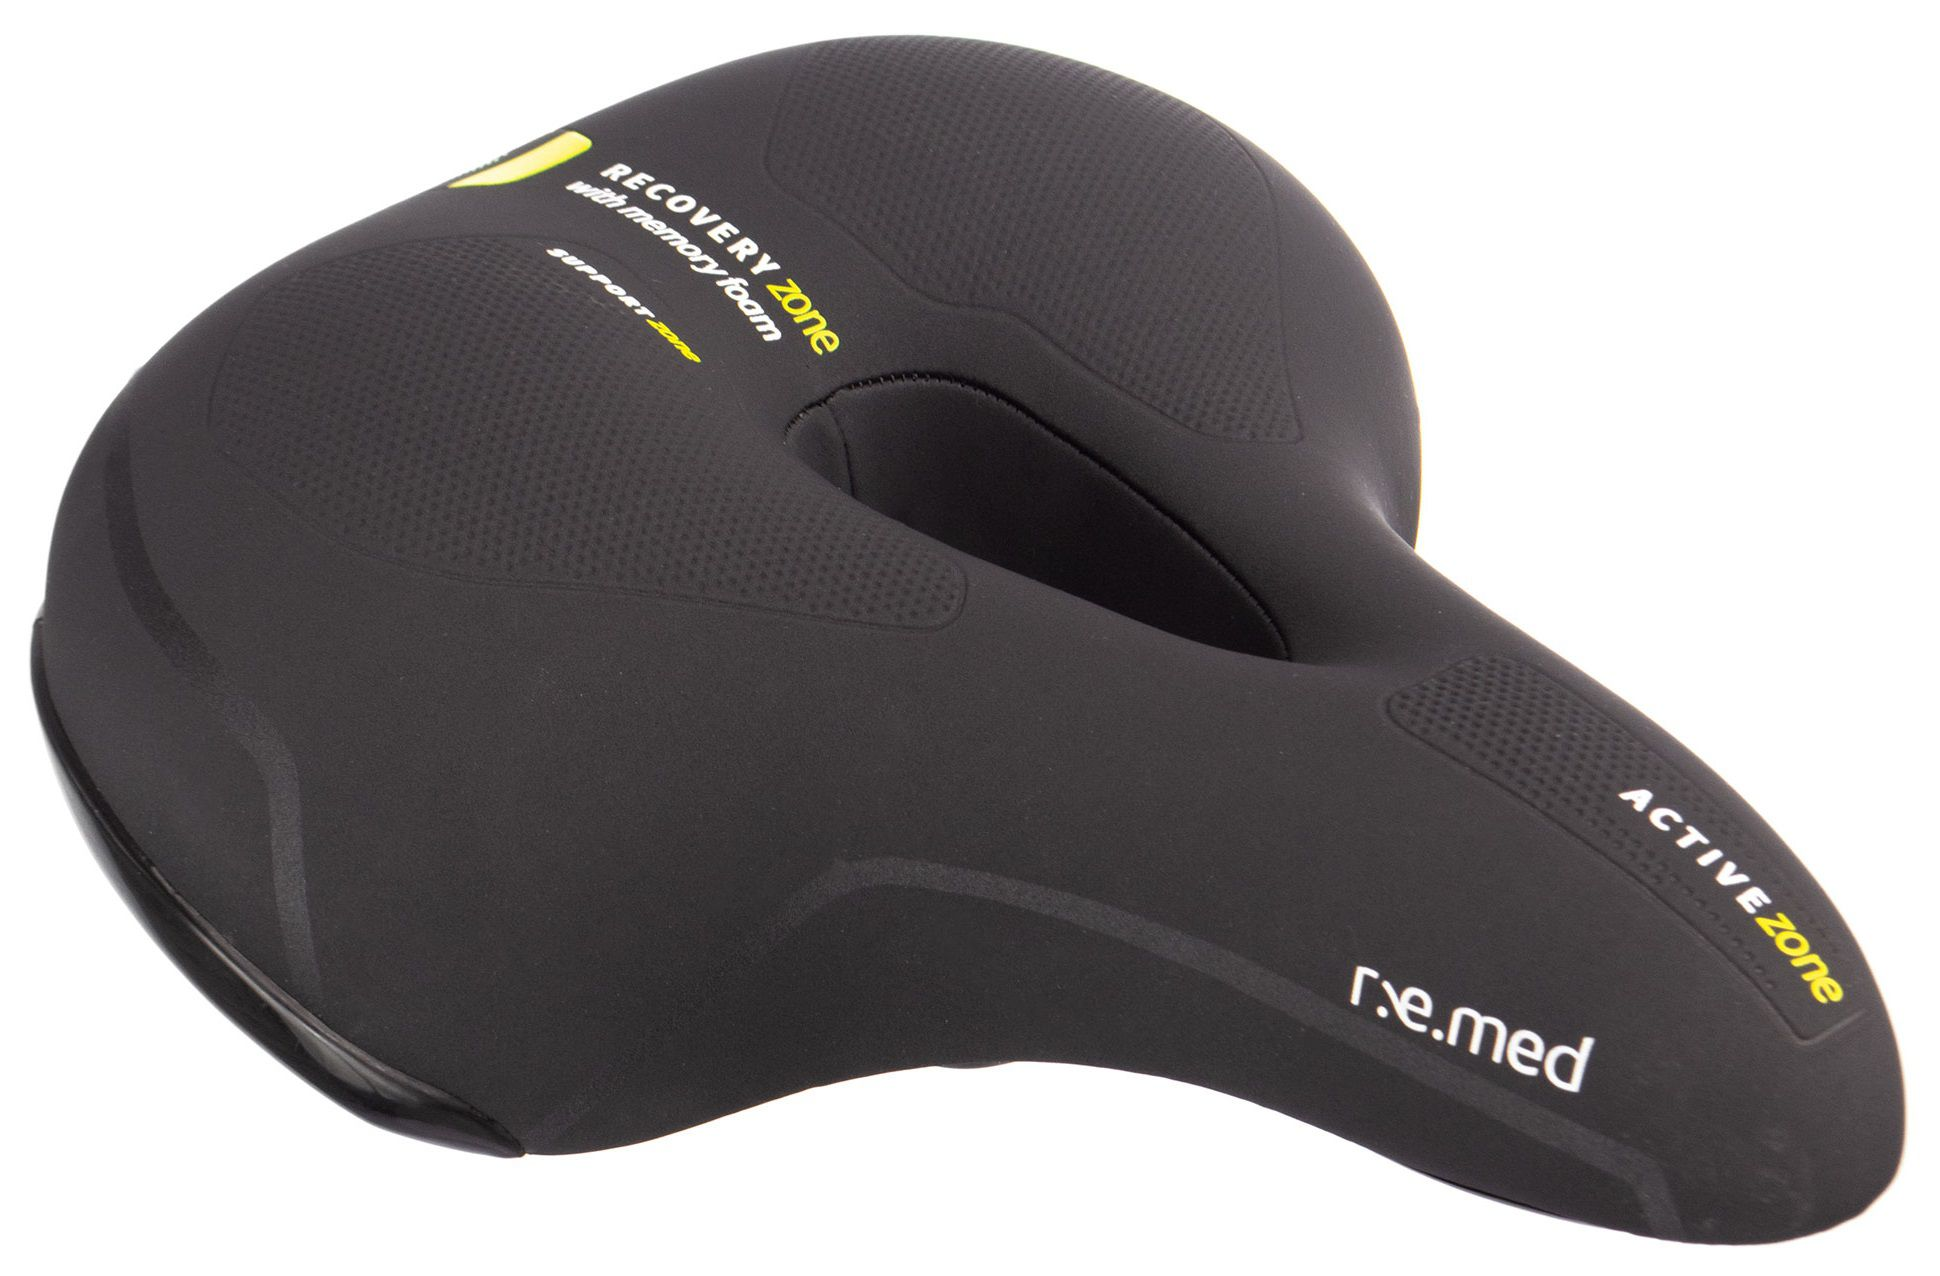 Selle Royal Remed City 249x207mm